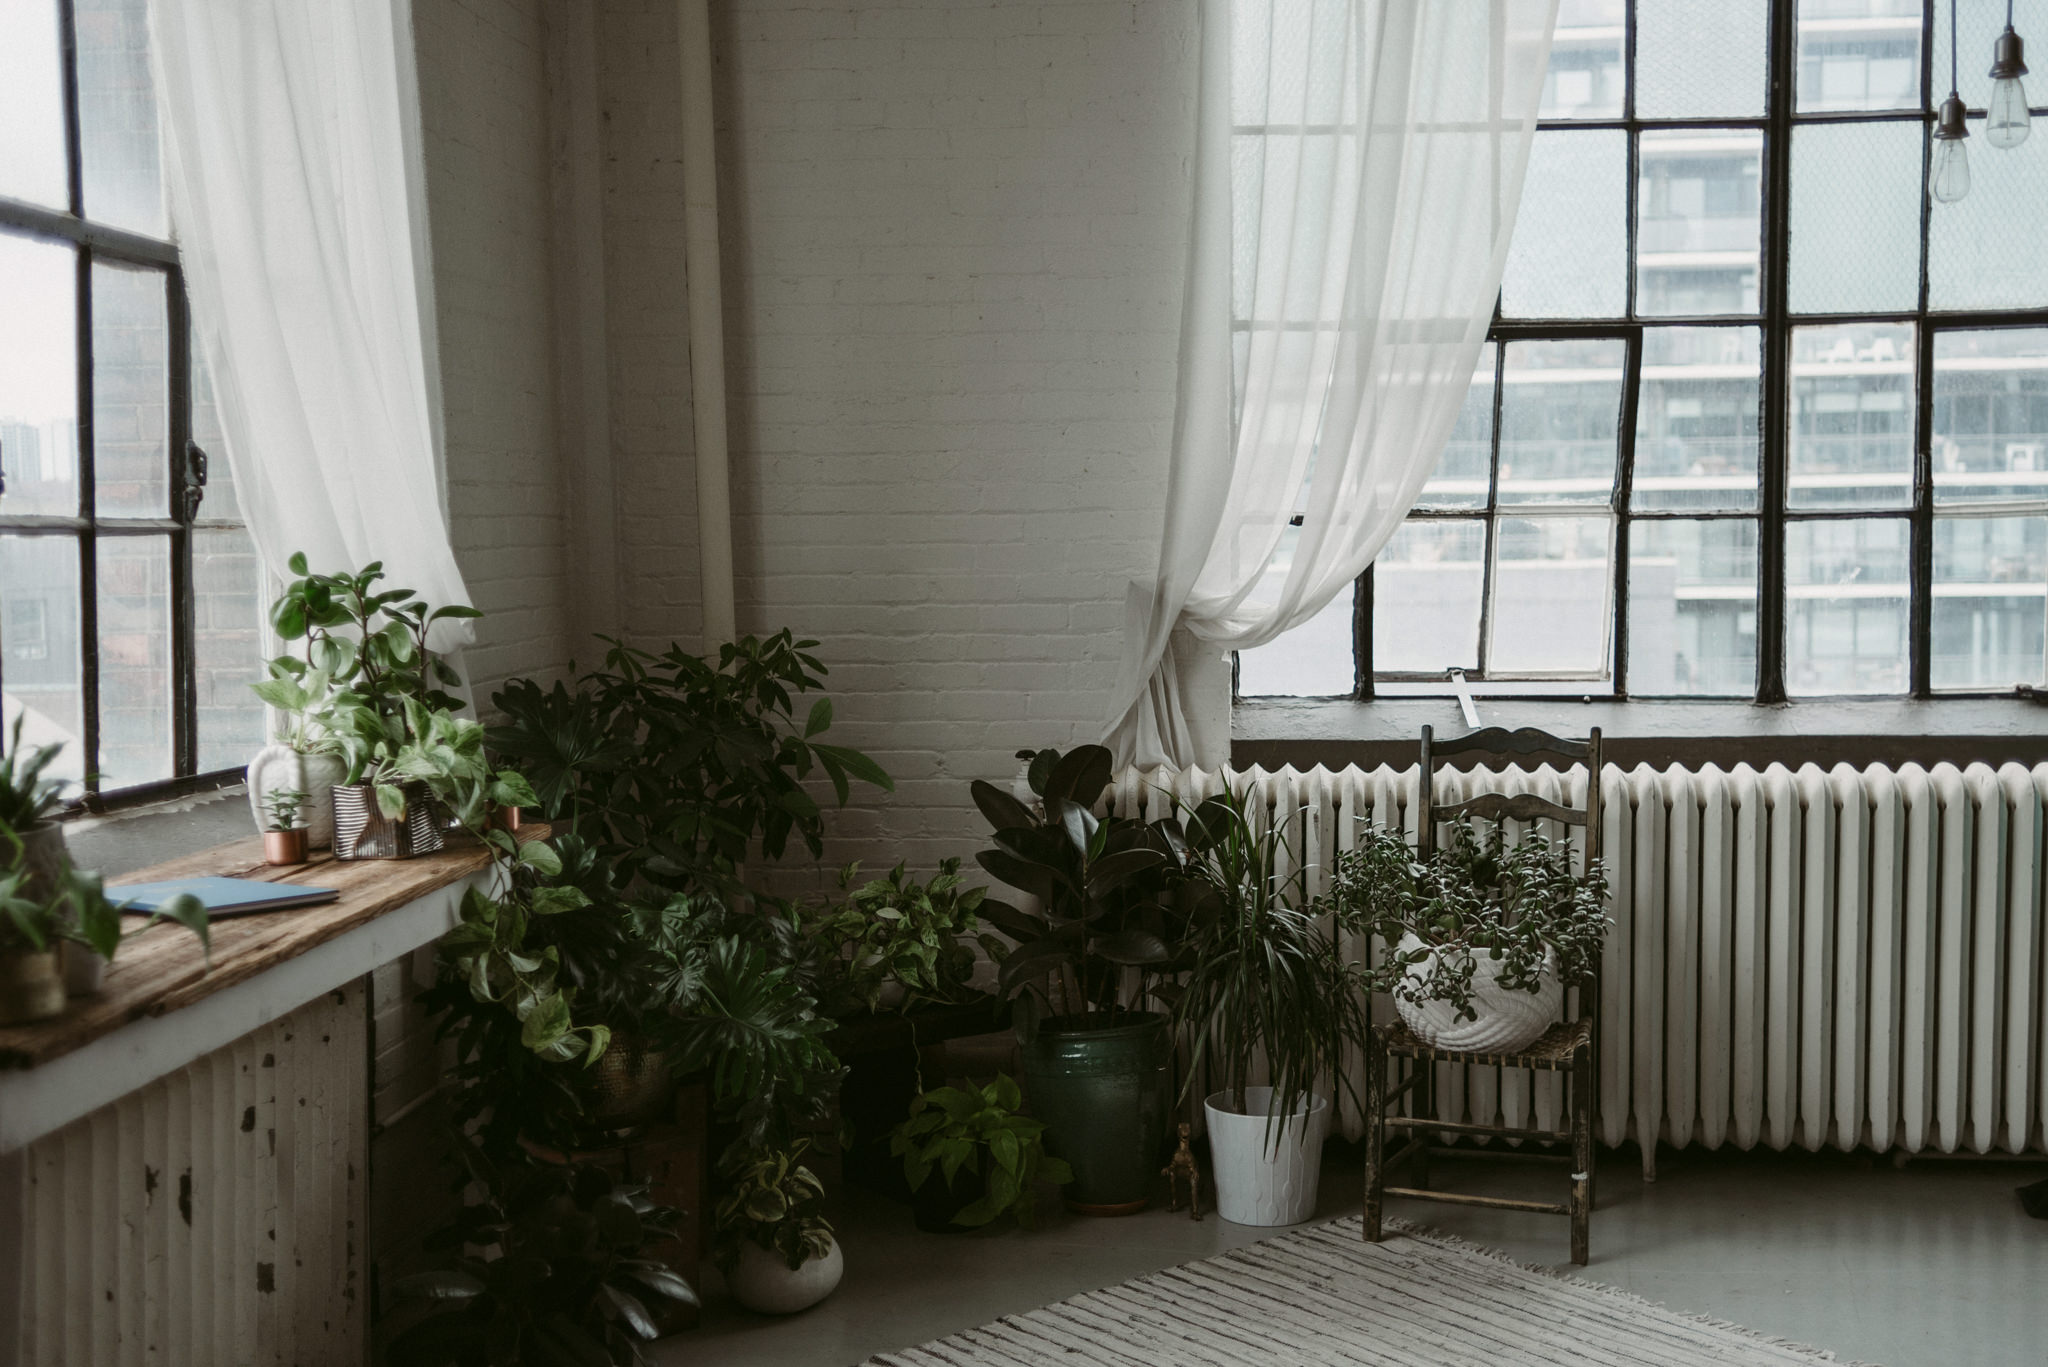 Plants and white brick walls in loft with large windows